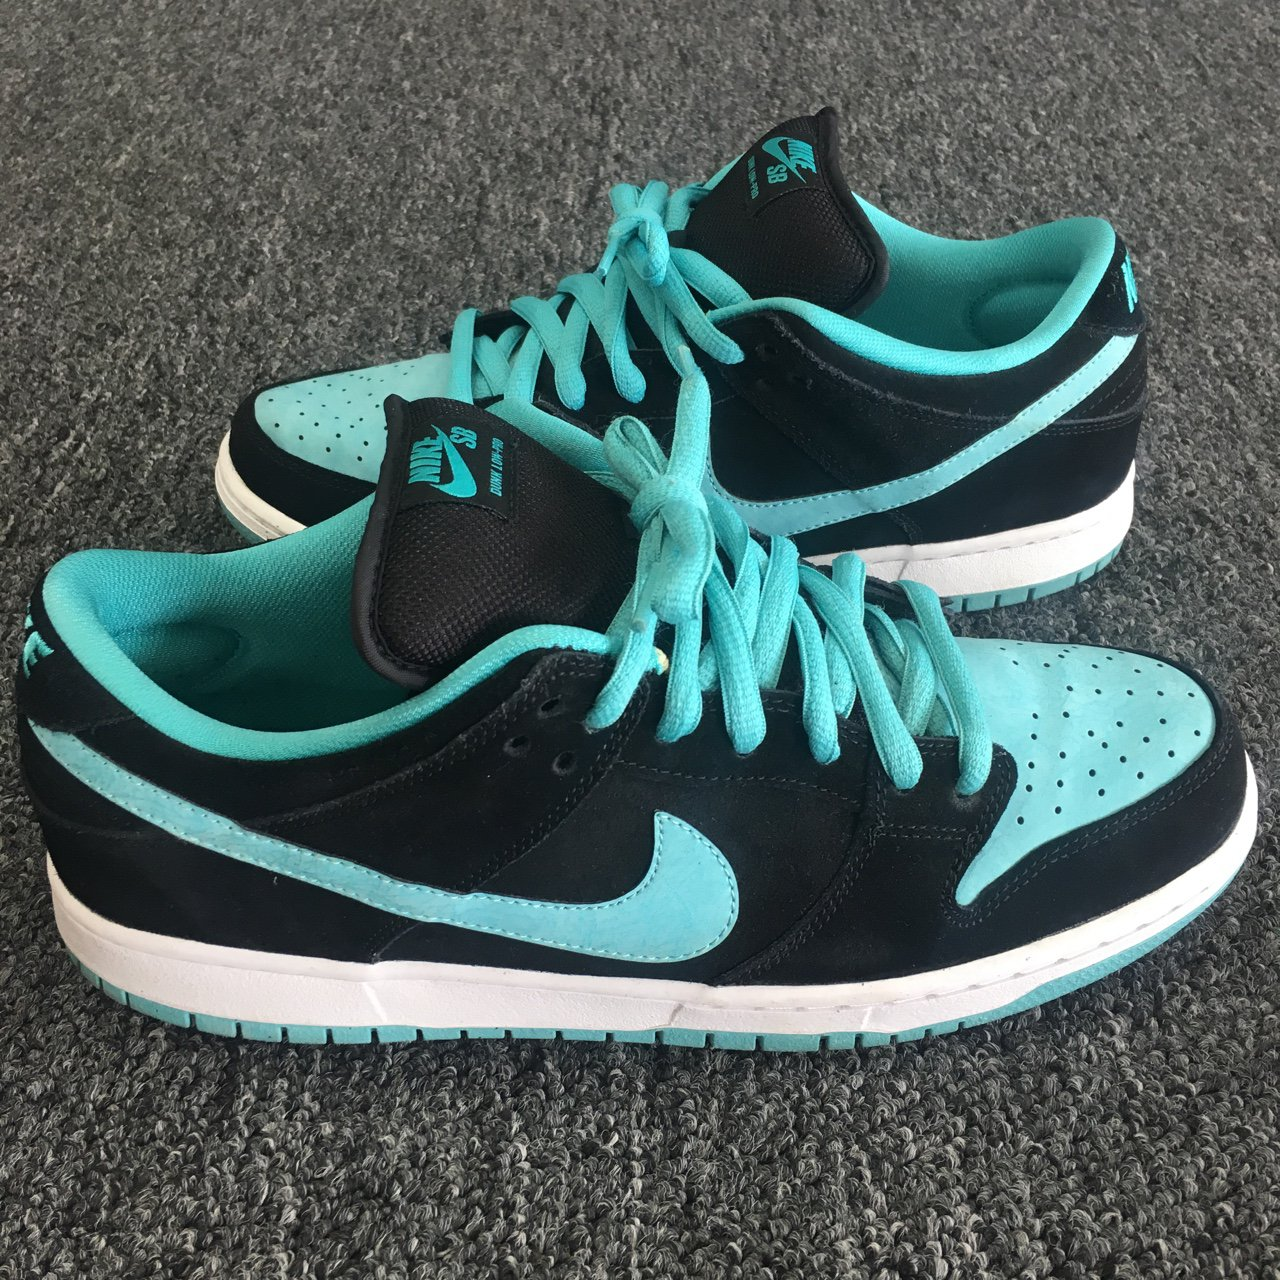 Nike SB Dunk low pro black clear jade white 2013. Lightly on - Depop 20b2bade8e